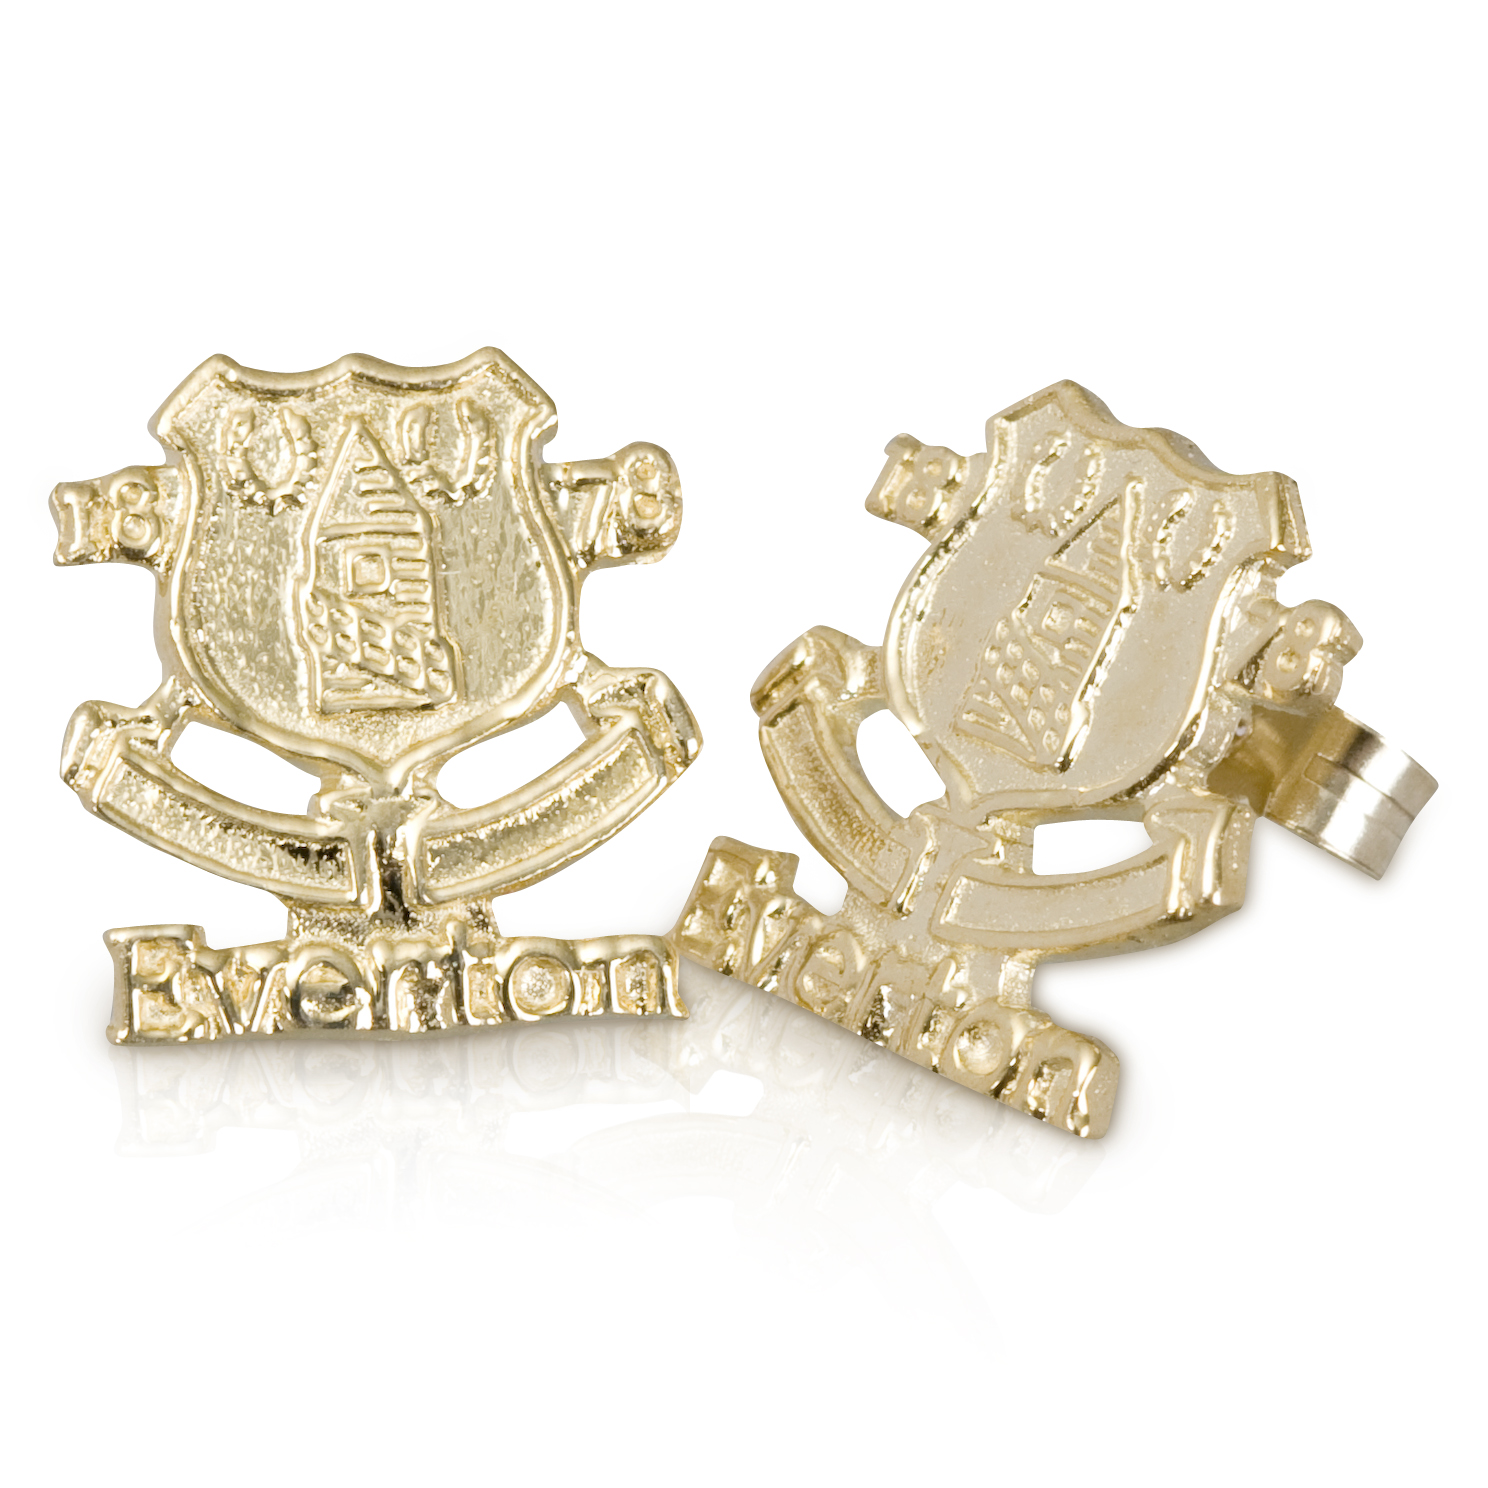 Everton Crest Stud Earring - Pair - 9ct Gold